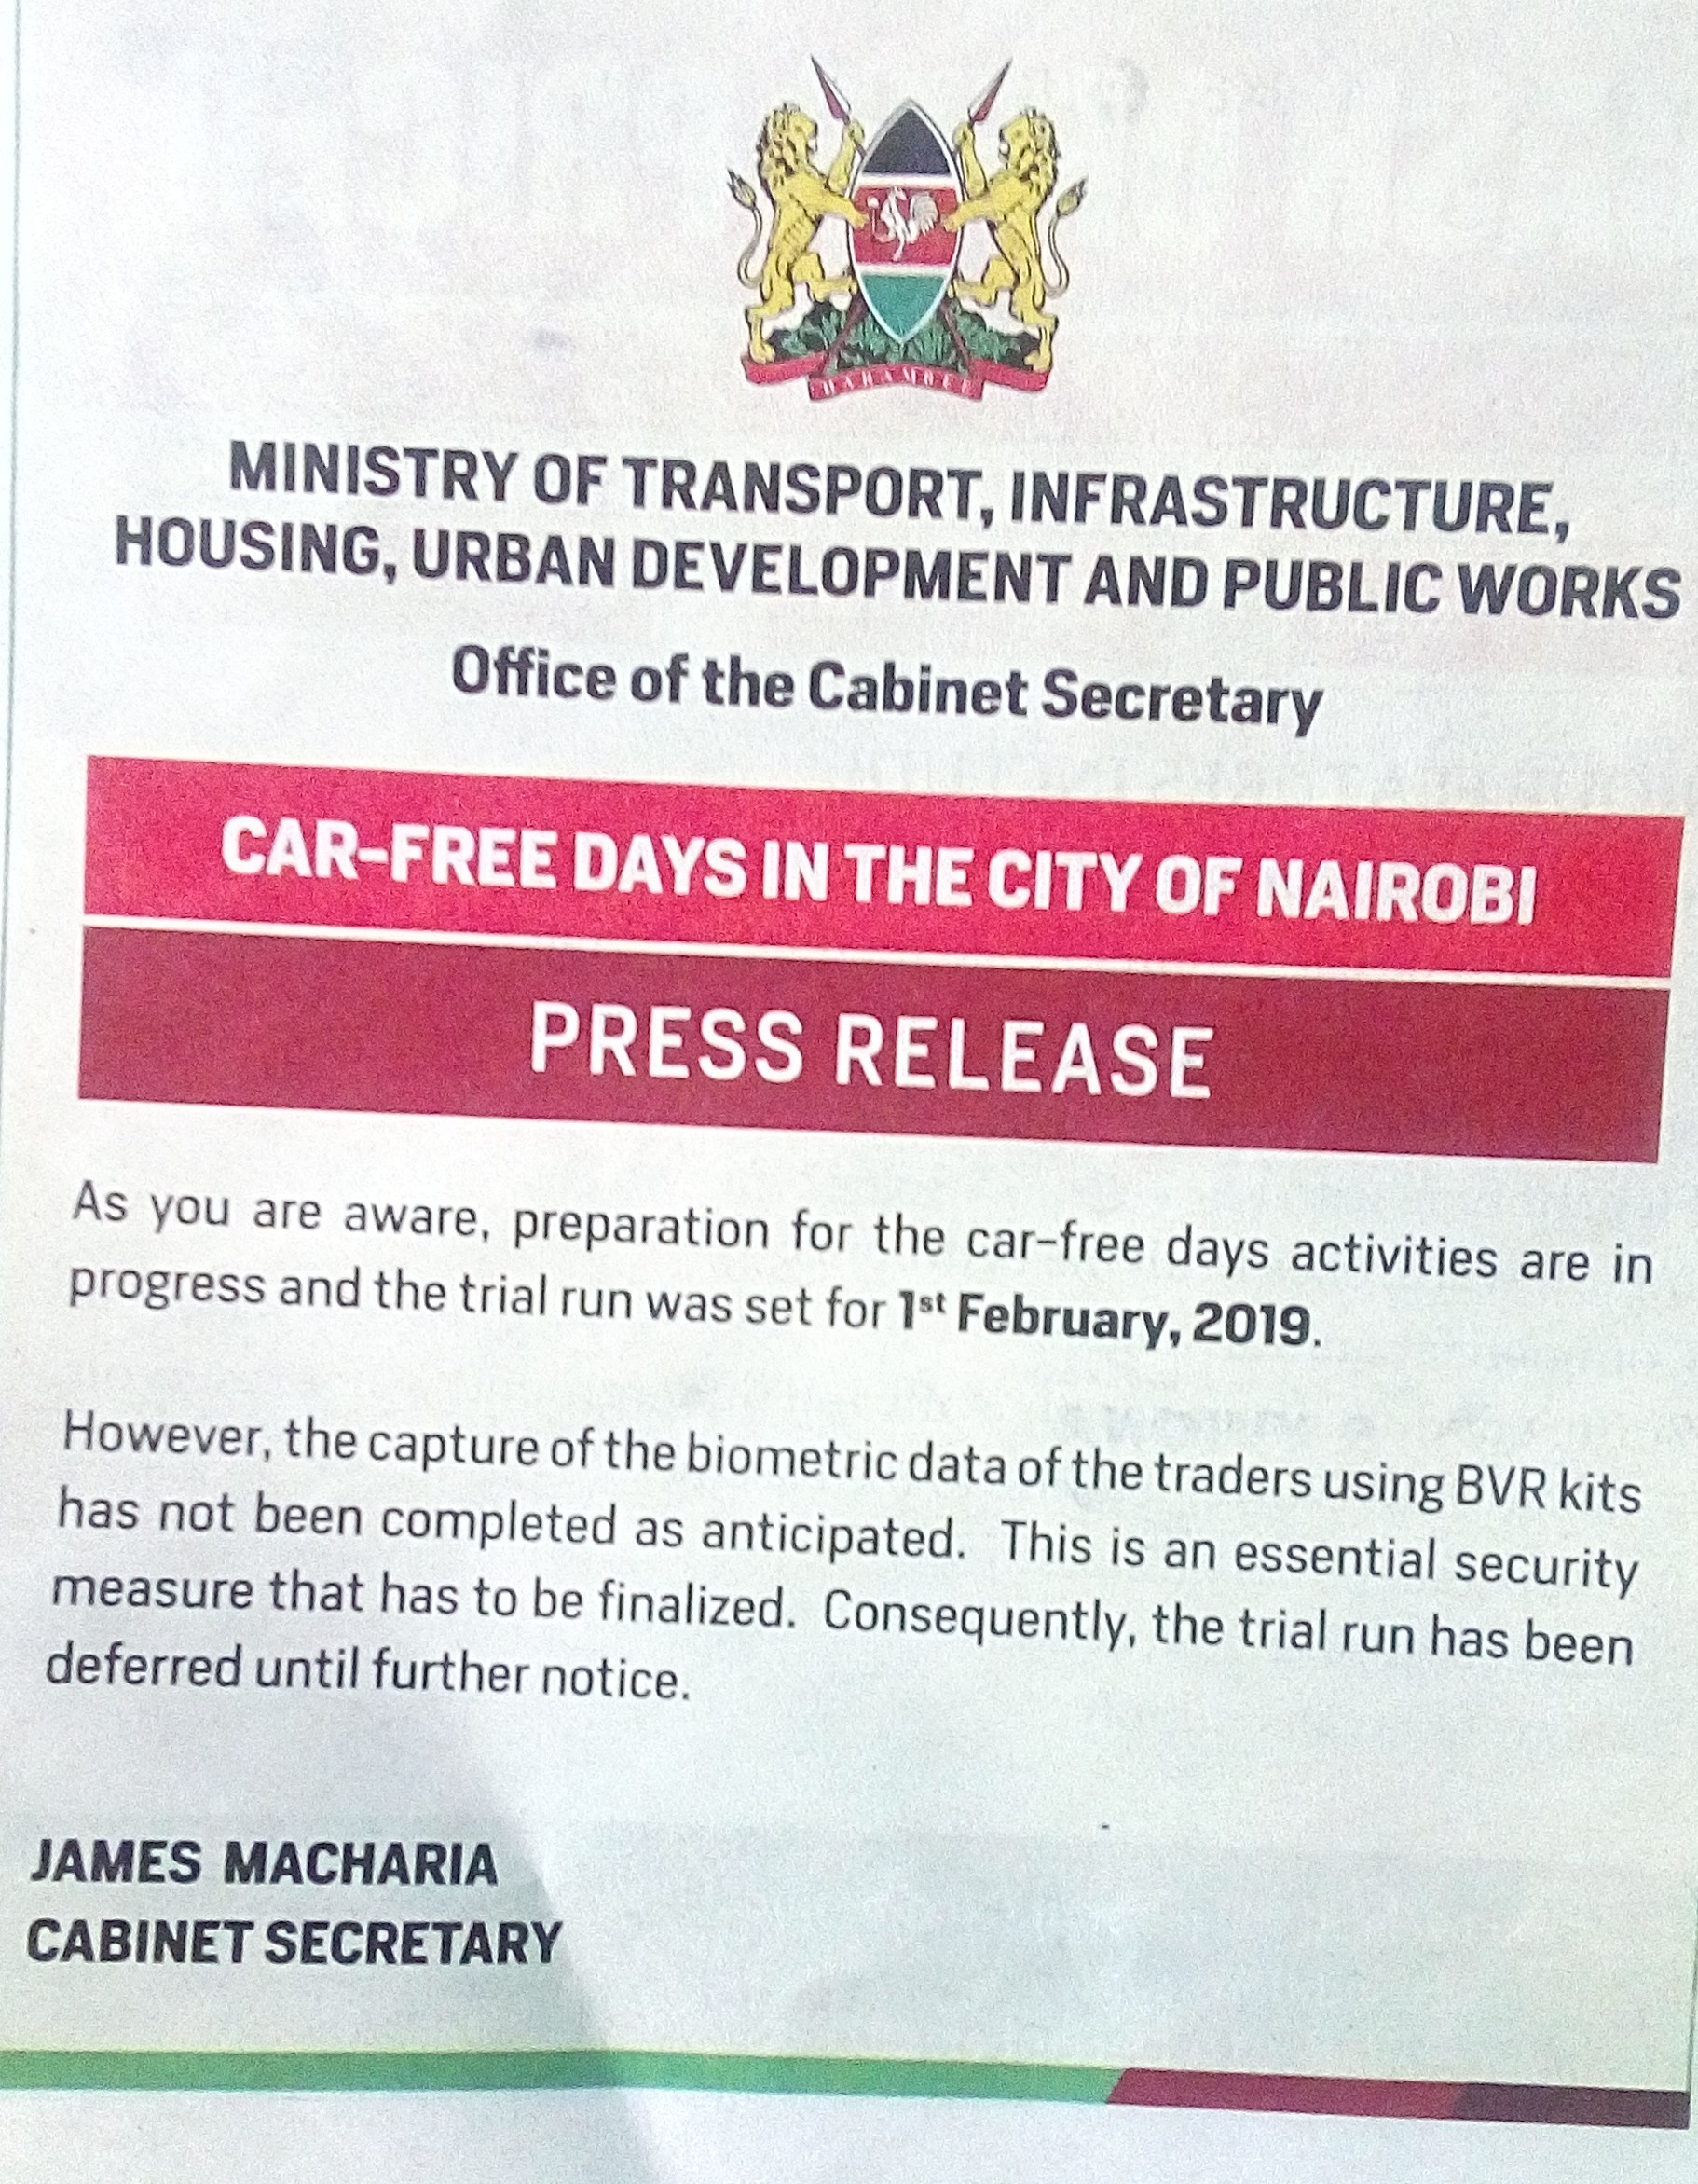 Implementation of car-free days in Nairobi City deferred until further notice